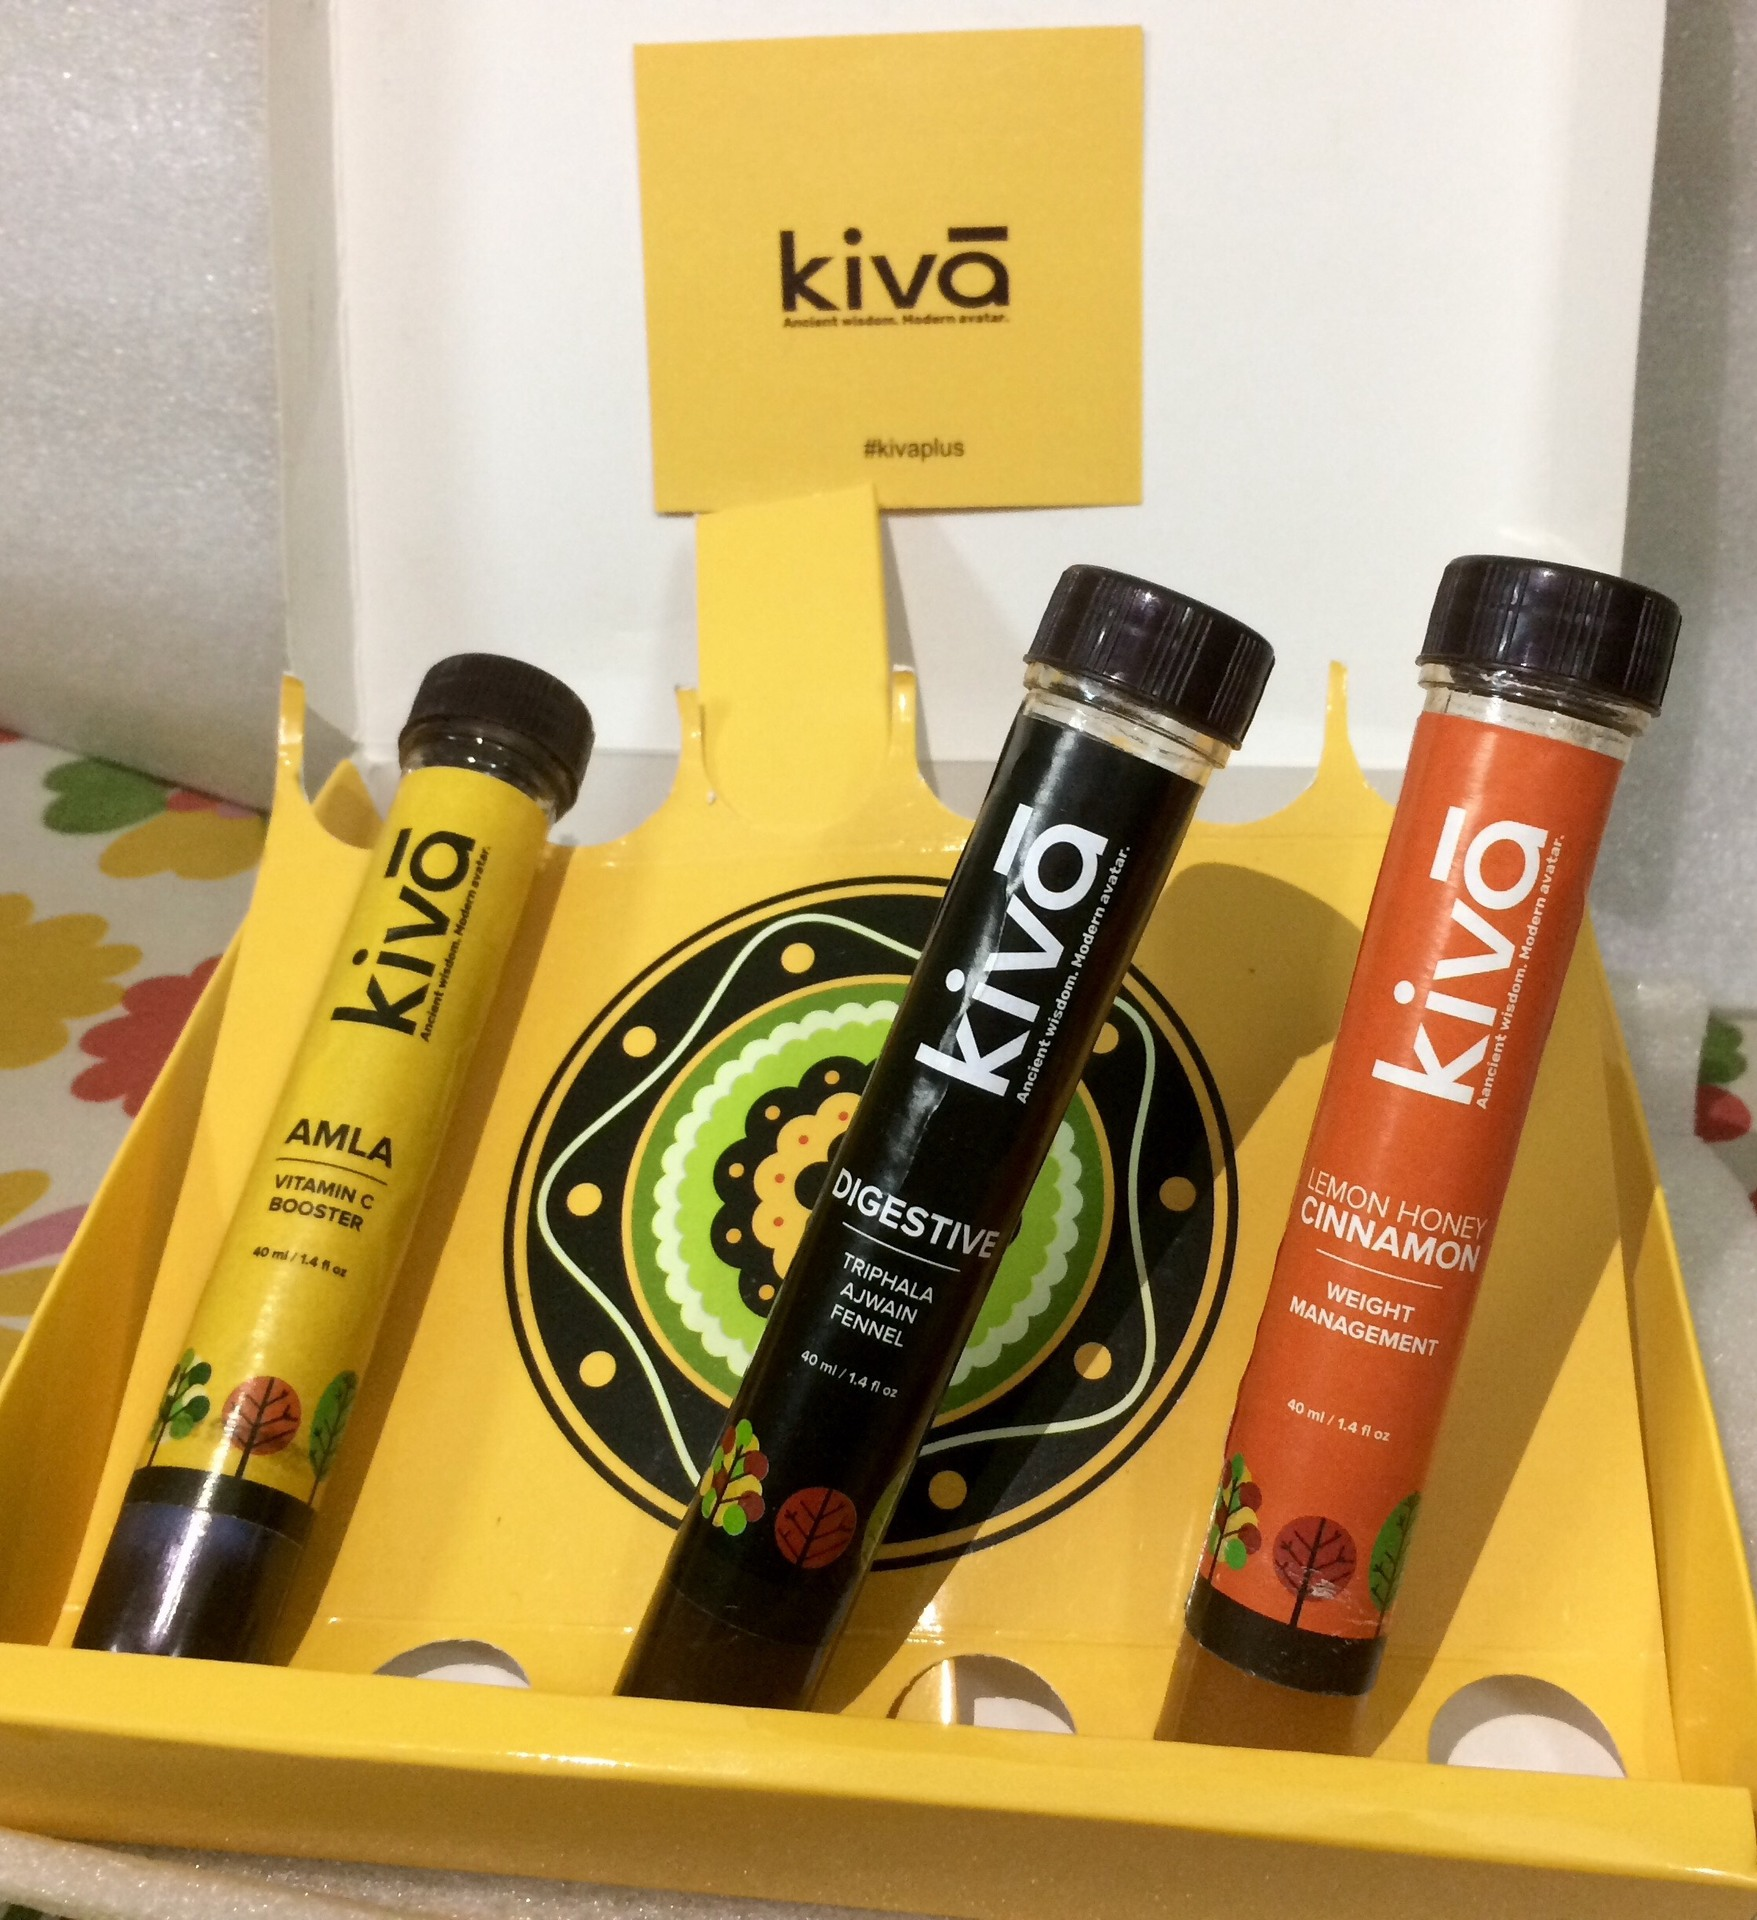 Ayurvedic Shots from kivā image